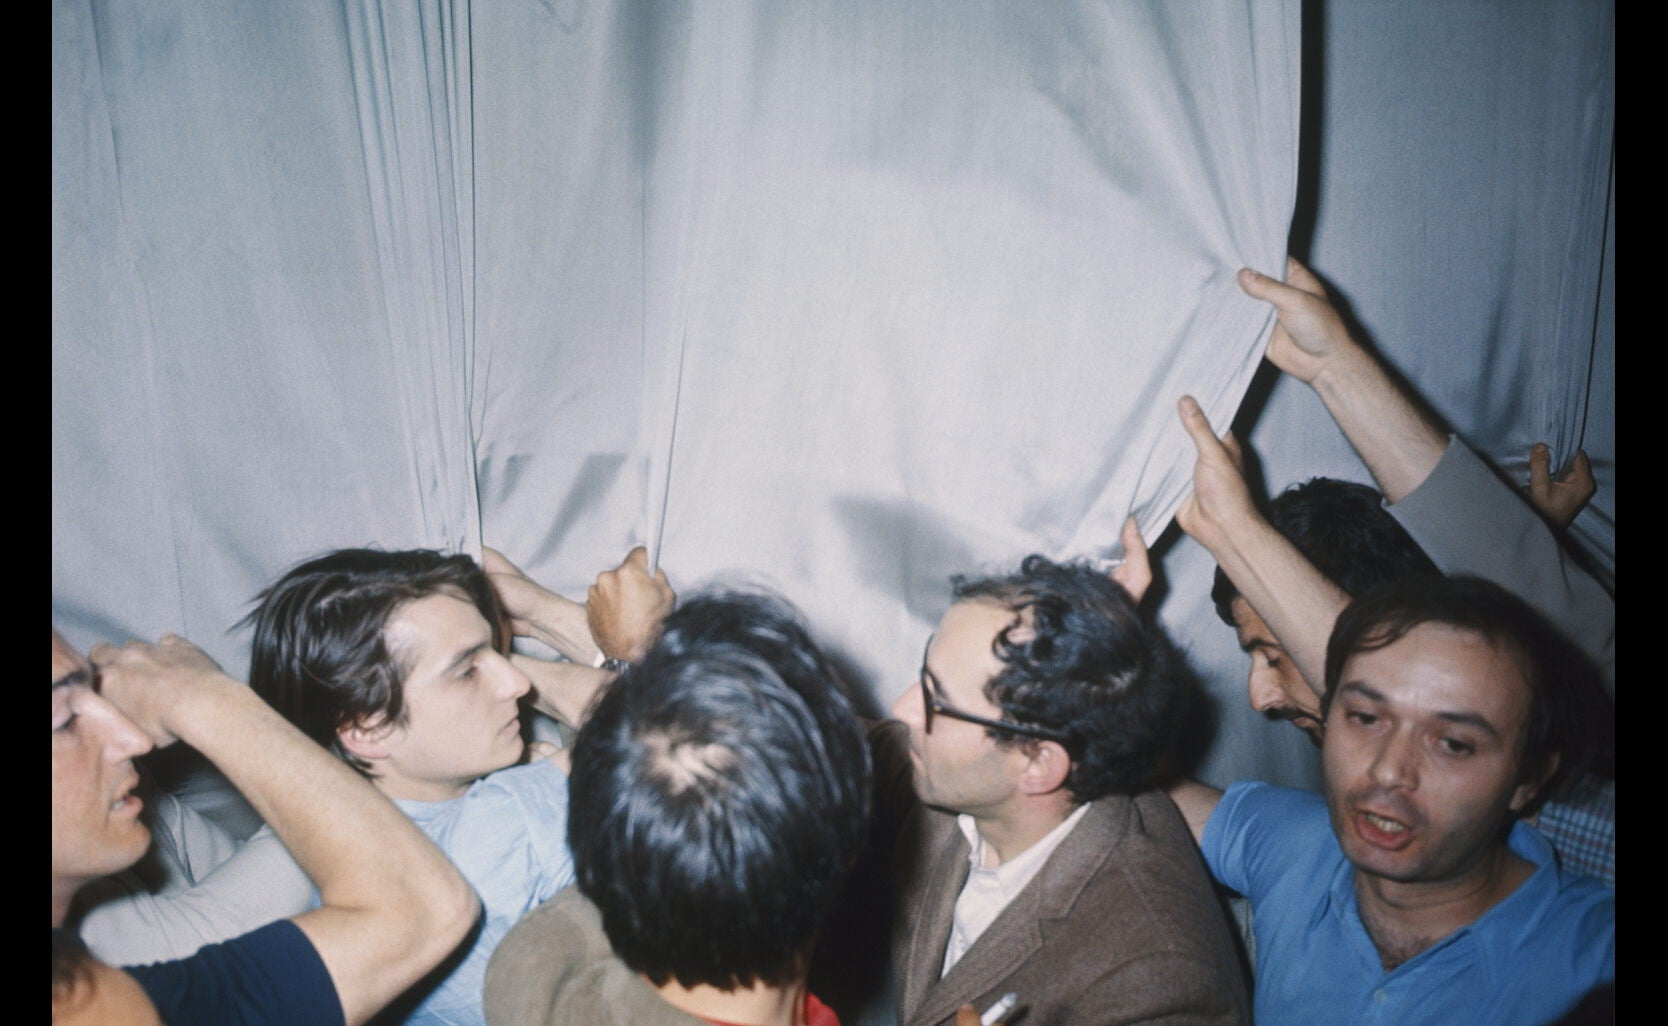 Godard, Leaud, protest at the 21st Cannes Film Festival